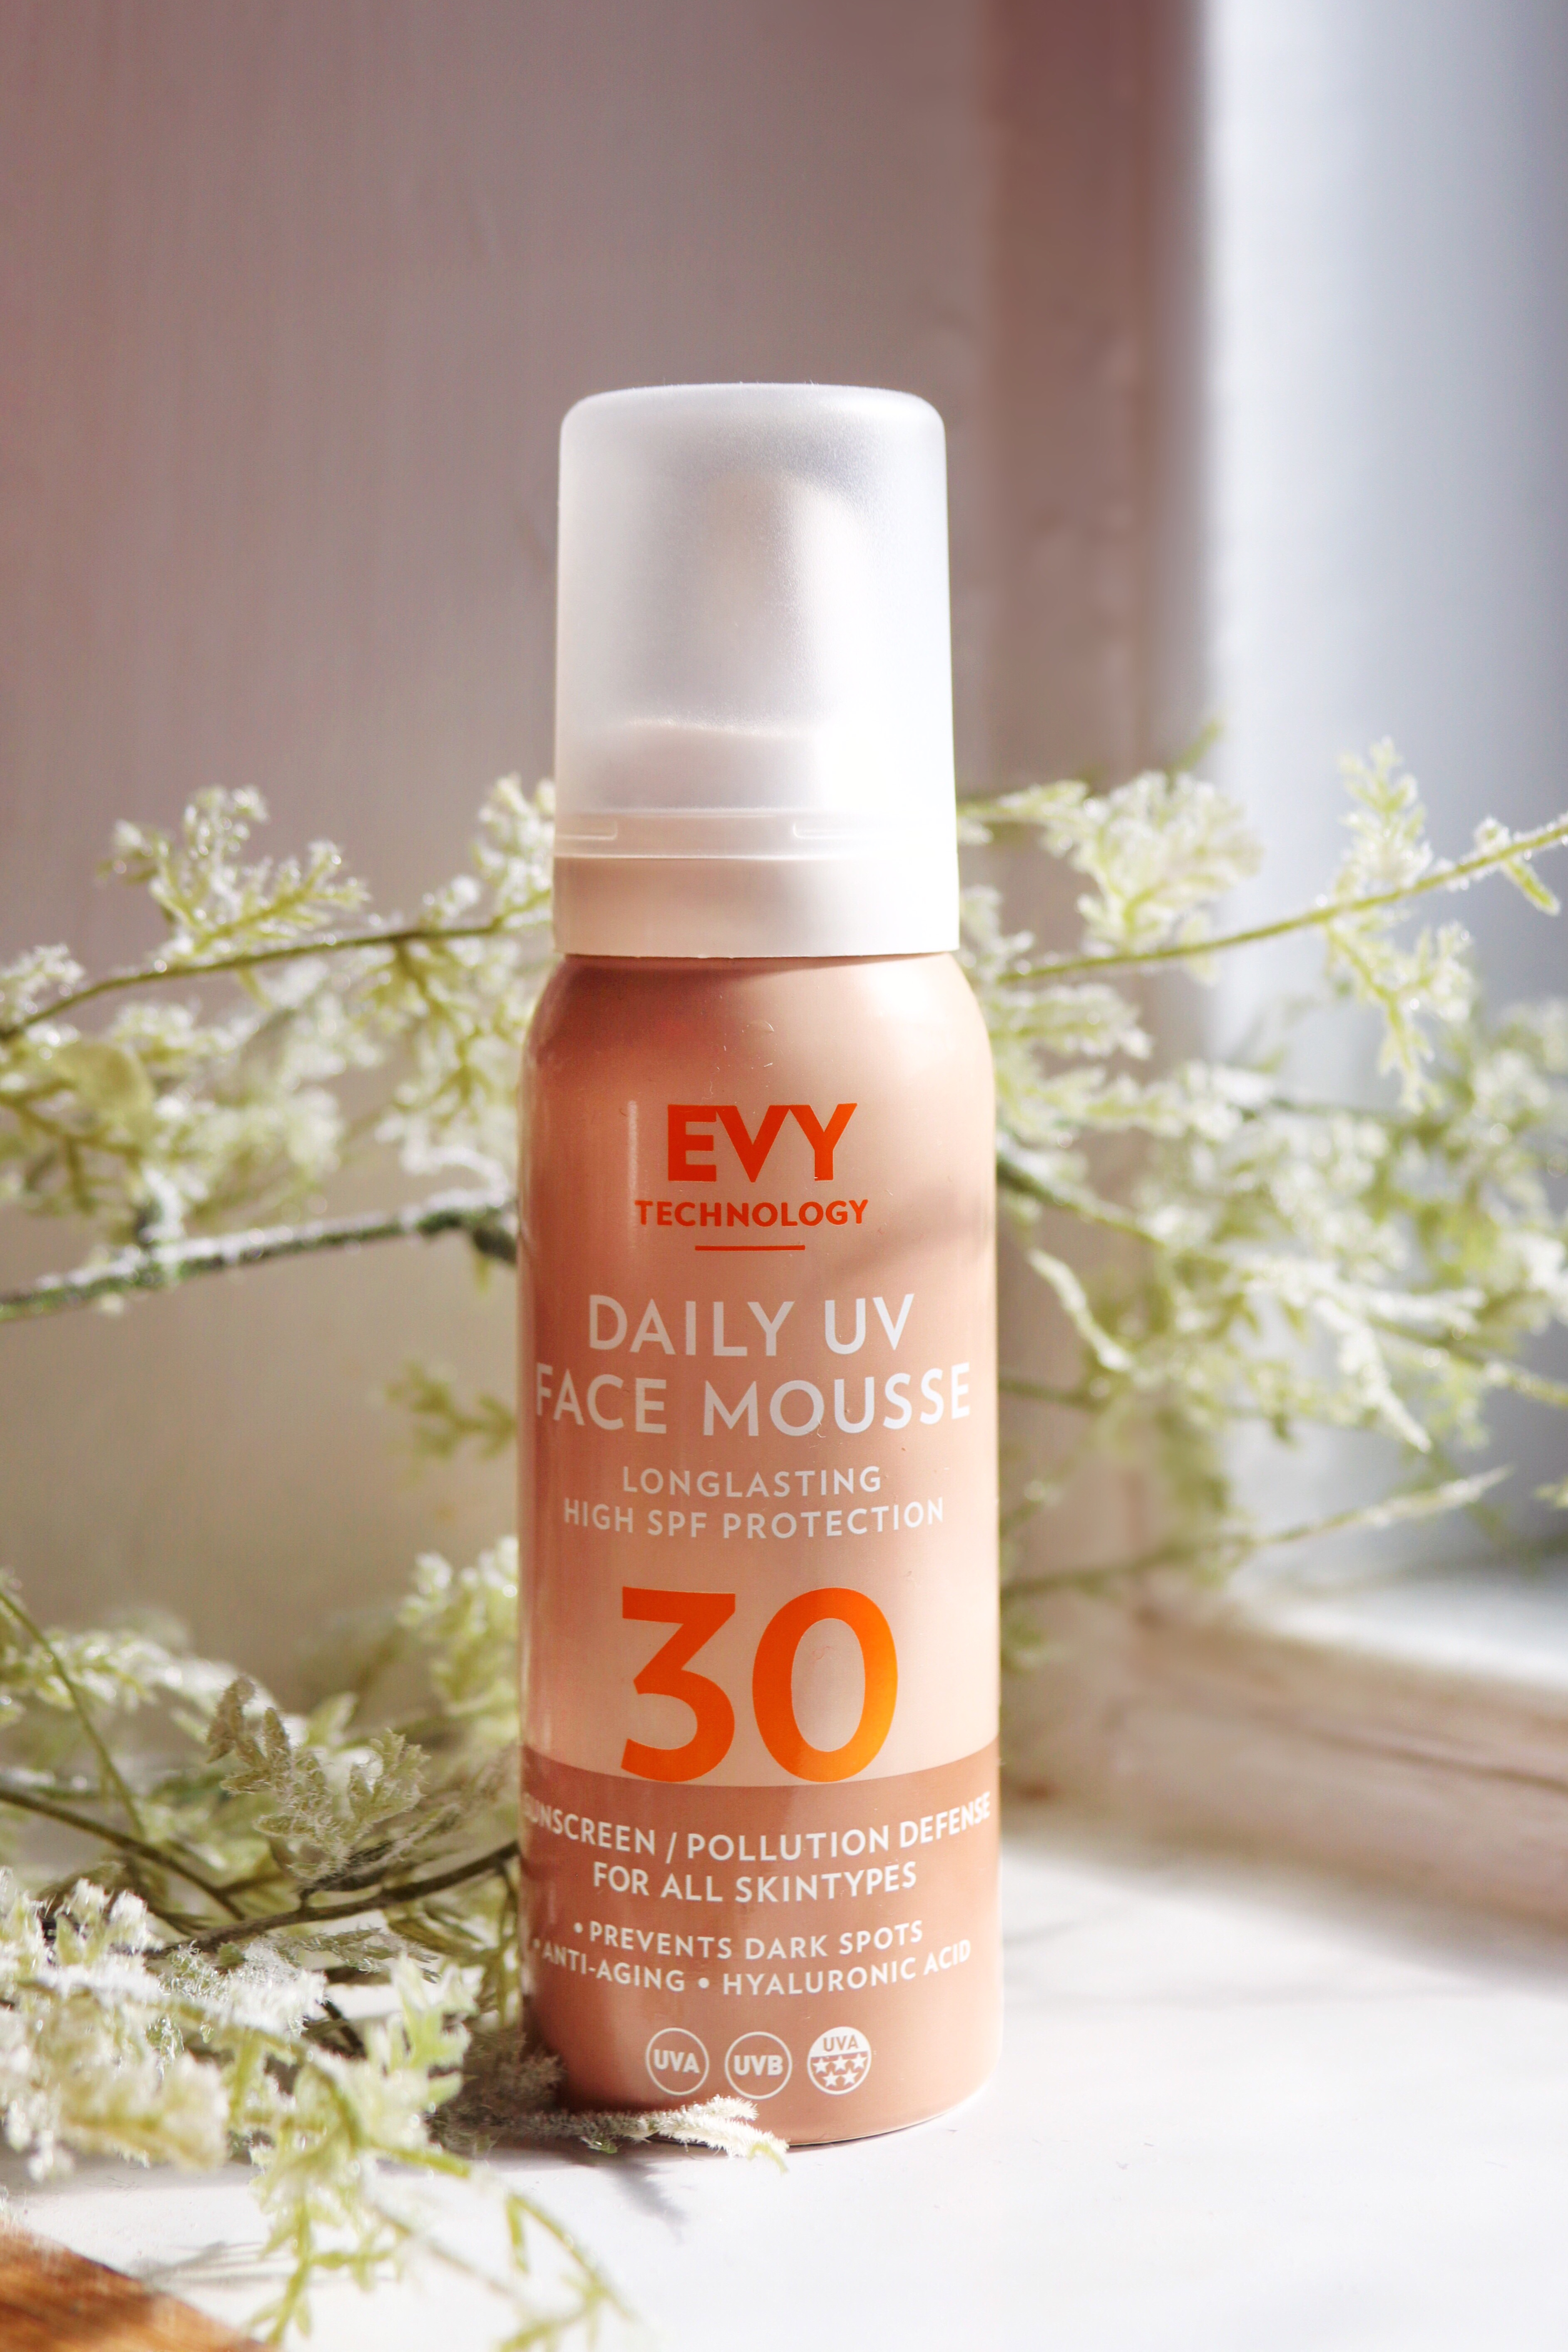 Aerosol can of a SPF. The can is two shades of tan brown, one lighter one darker and the lid is white. The logo is orange and reads 'EVY TECHNOLOGY' followed by 'DAILY UV FACE MOUSSE' in white. The can in sat on a white window sill with white and green spring flowers behind to decorate. The light is shining in from a window on the left out of picture.